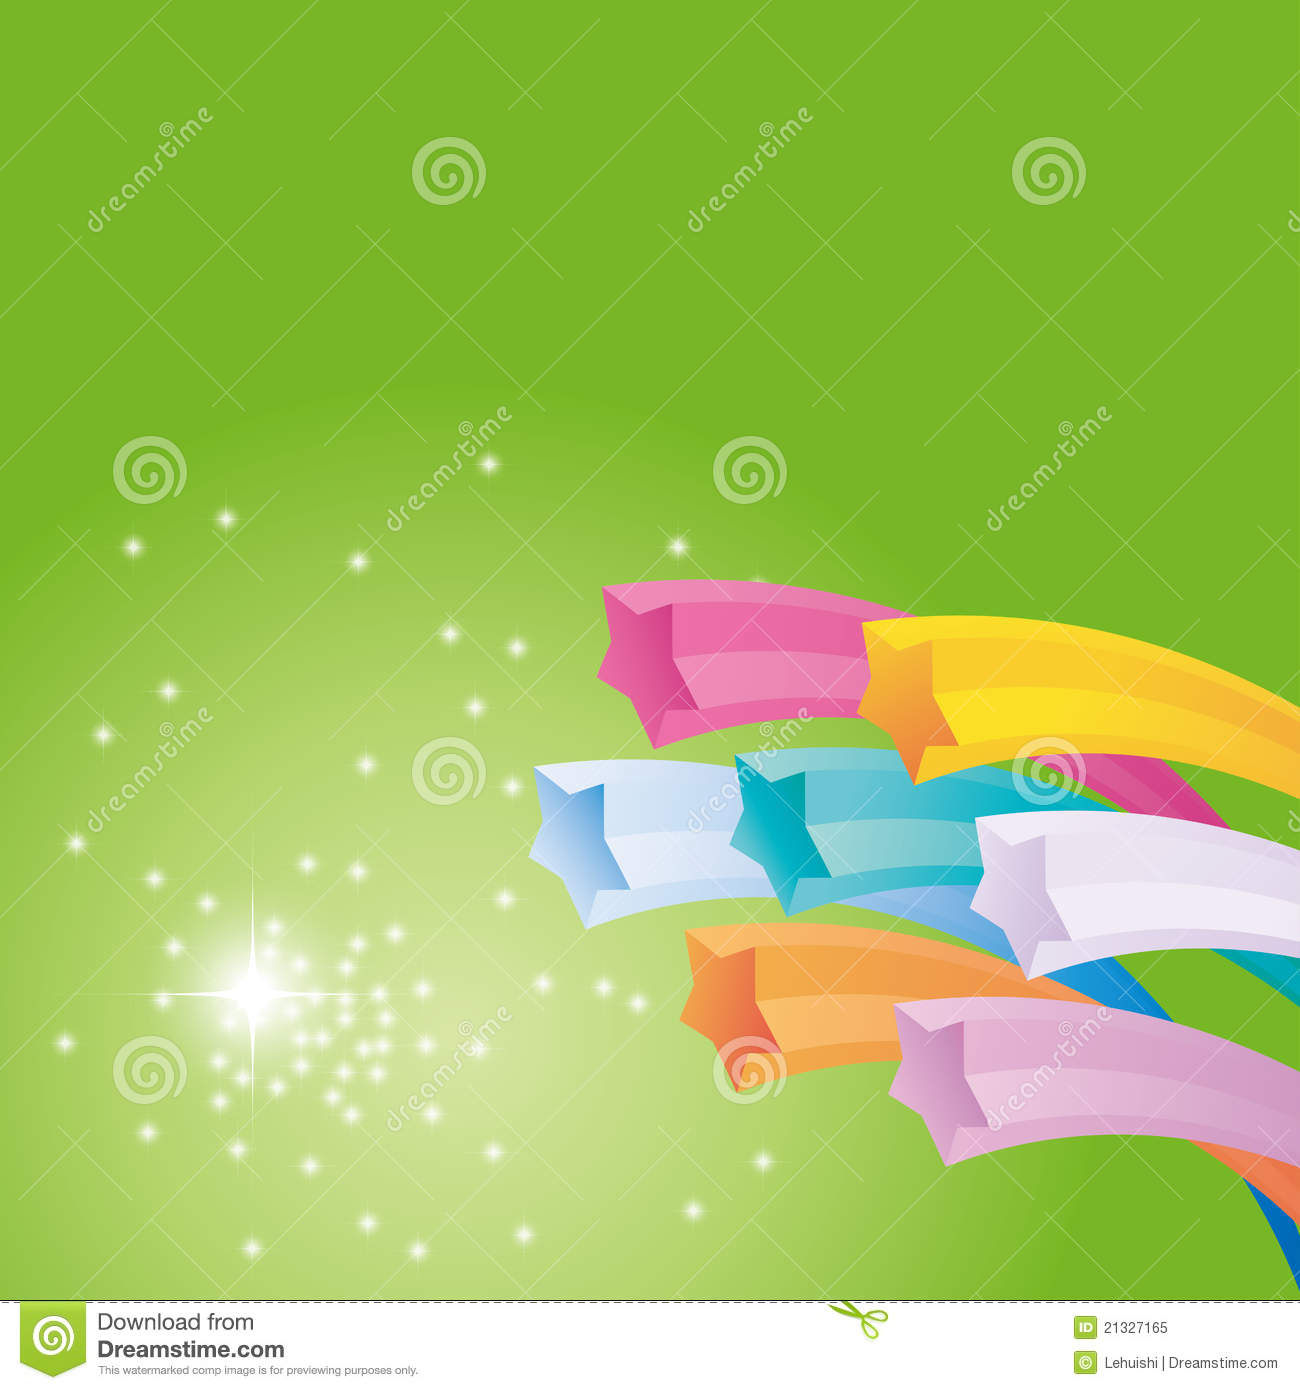 Vector Abstract Star Cover Background Royalty Free Stock